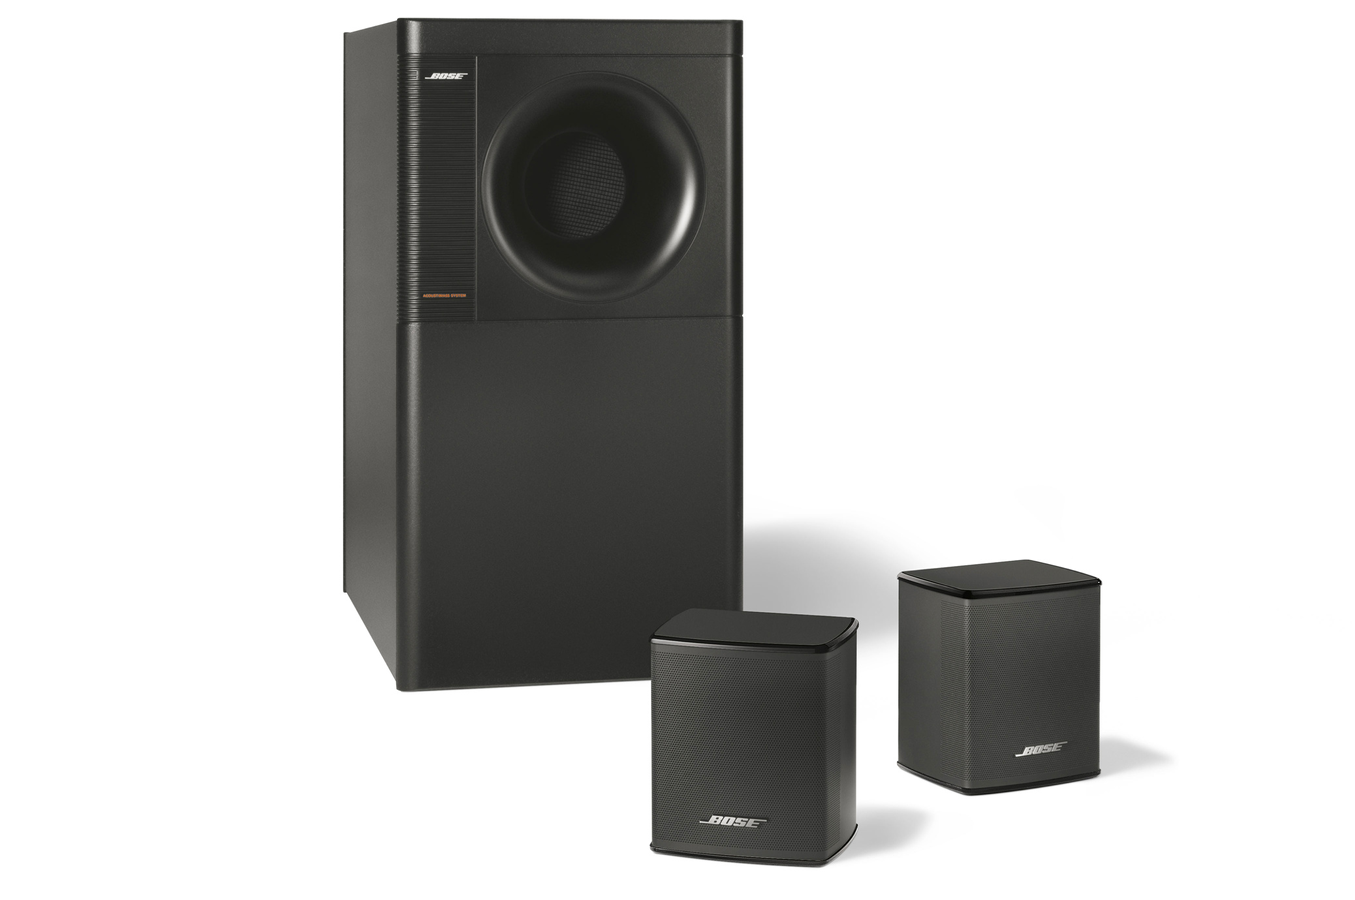 enceinte bose acoustimass enceinte bose acoustimass clasf. Black Bedroom Furniture Sets. Home Design Ideas